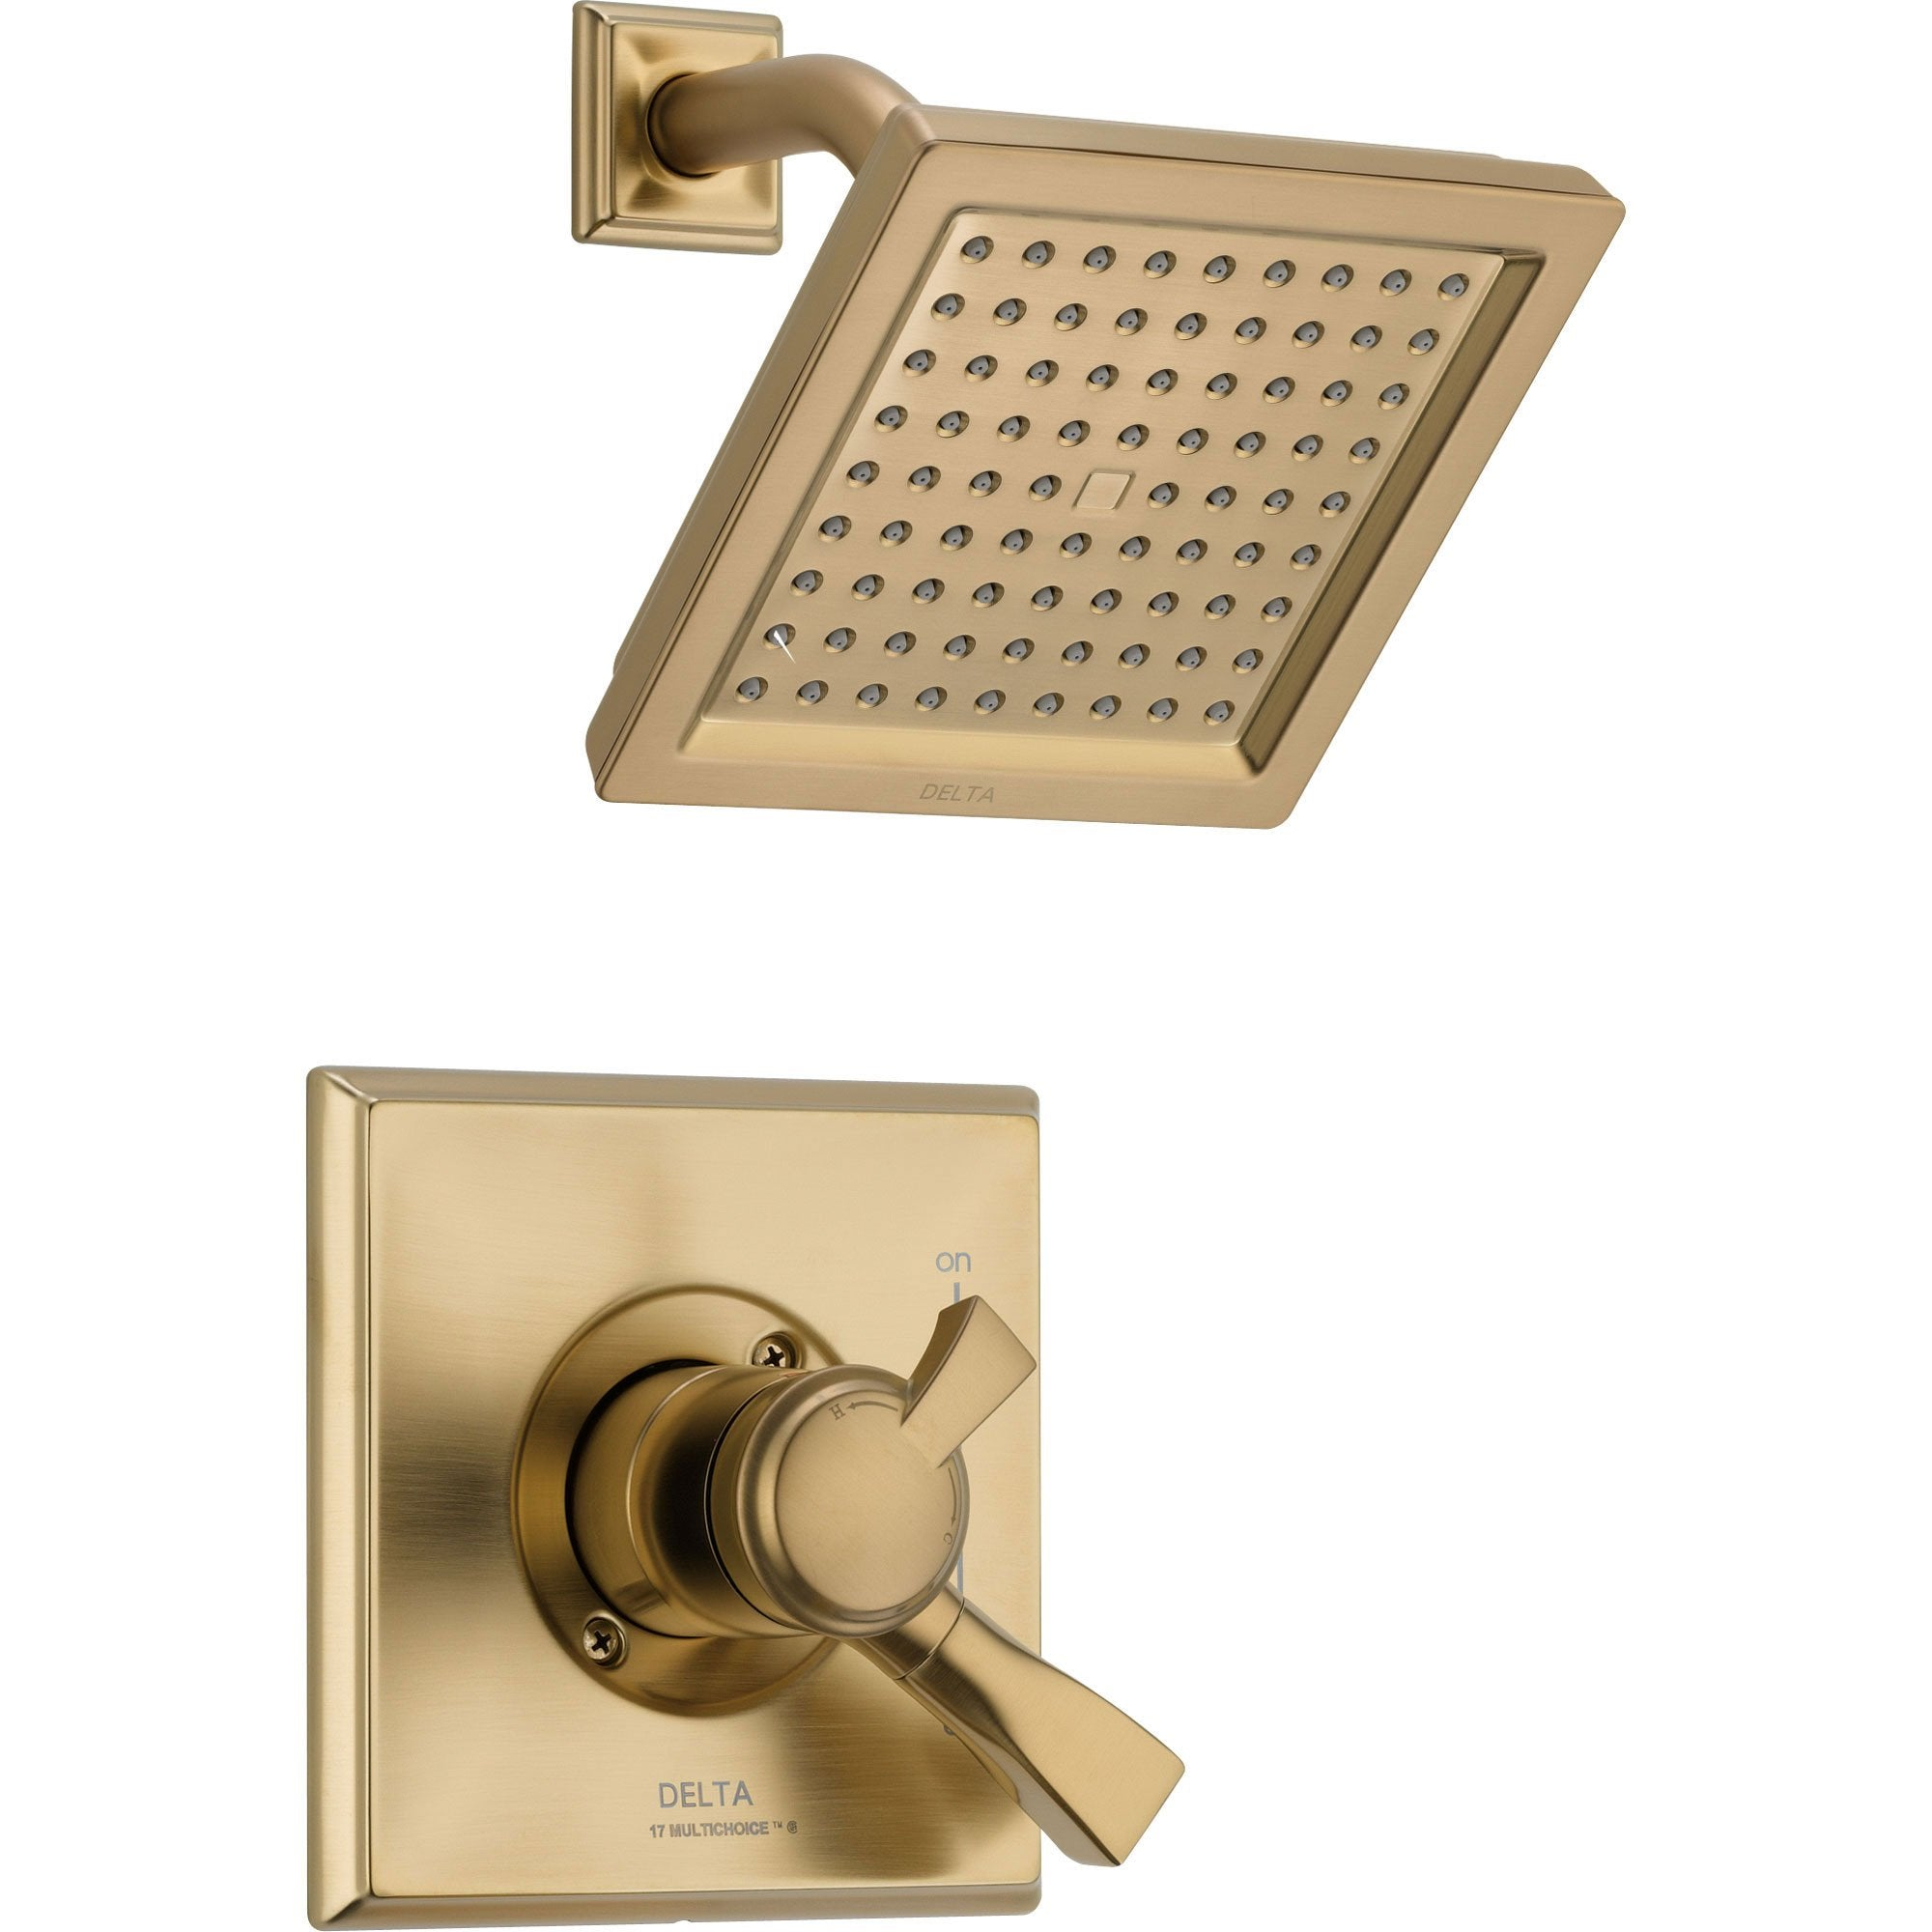 Delta Dryden Champagne Bronze Temp/Volume Control Shower Faucet with Valve D744V